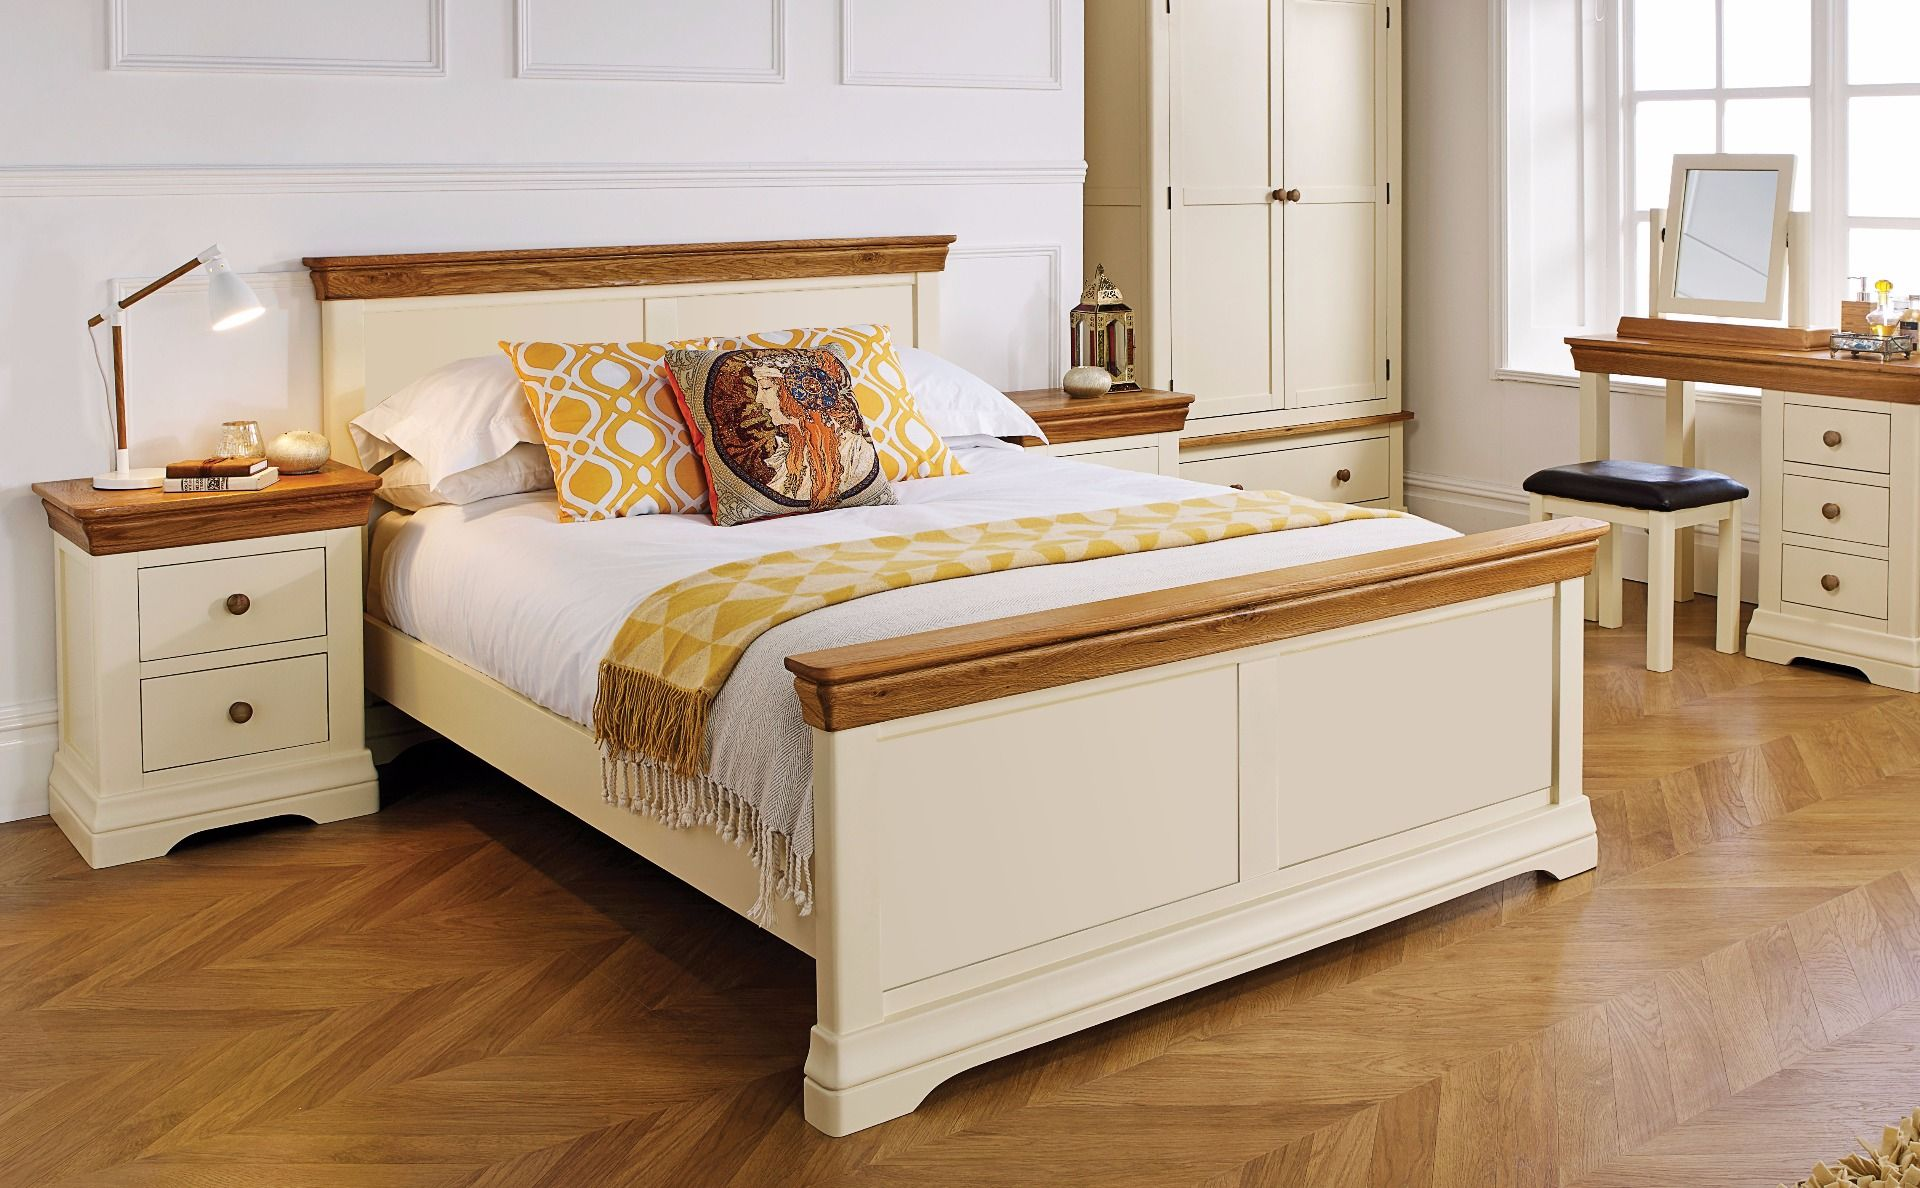 Picture of: Farmhouse Country Oak Cream Painted 5 Foot King Size Bed Free Delivery Top Furniture